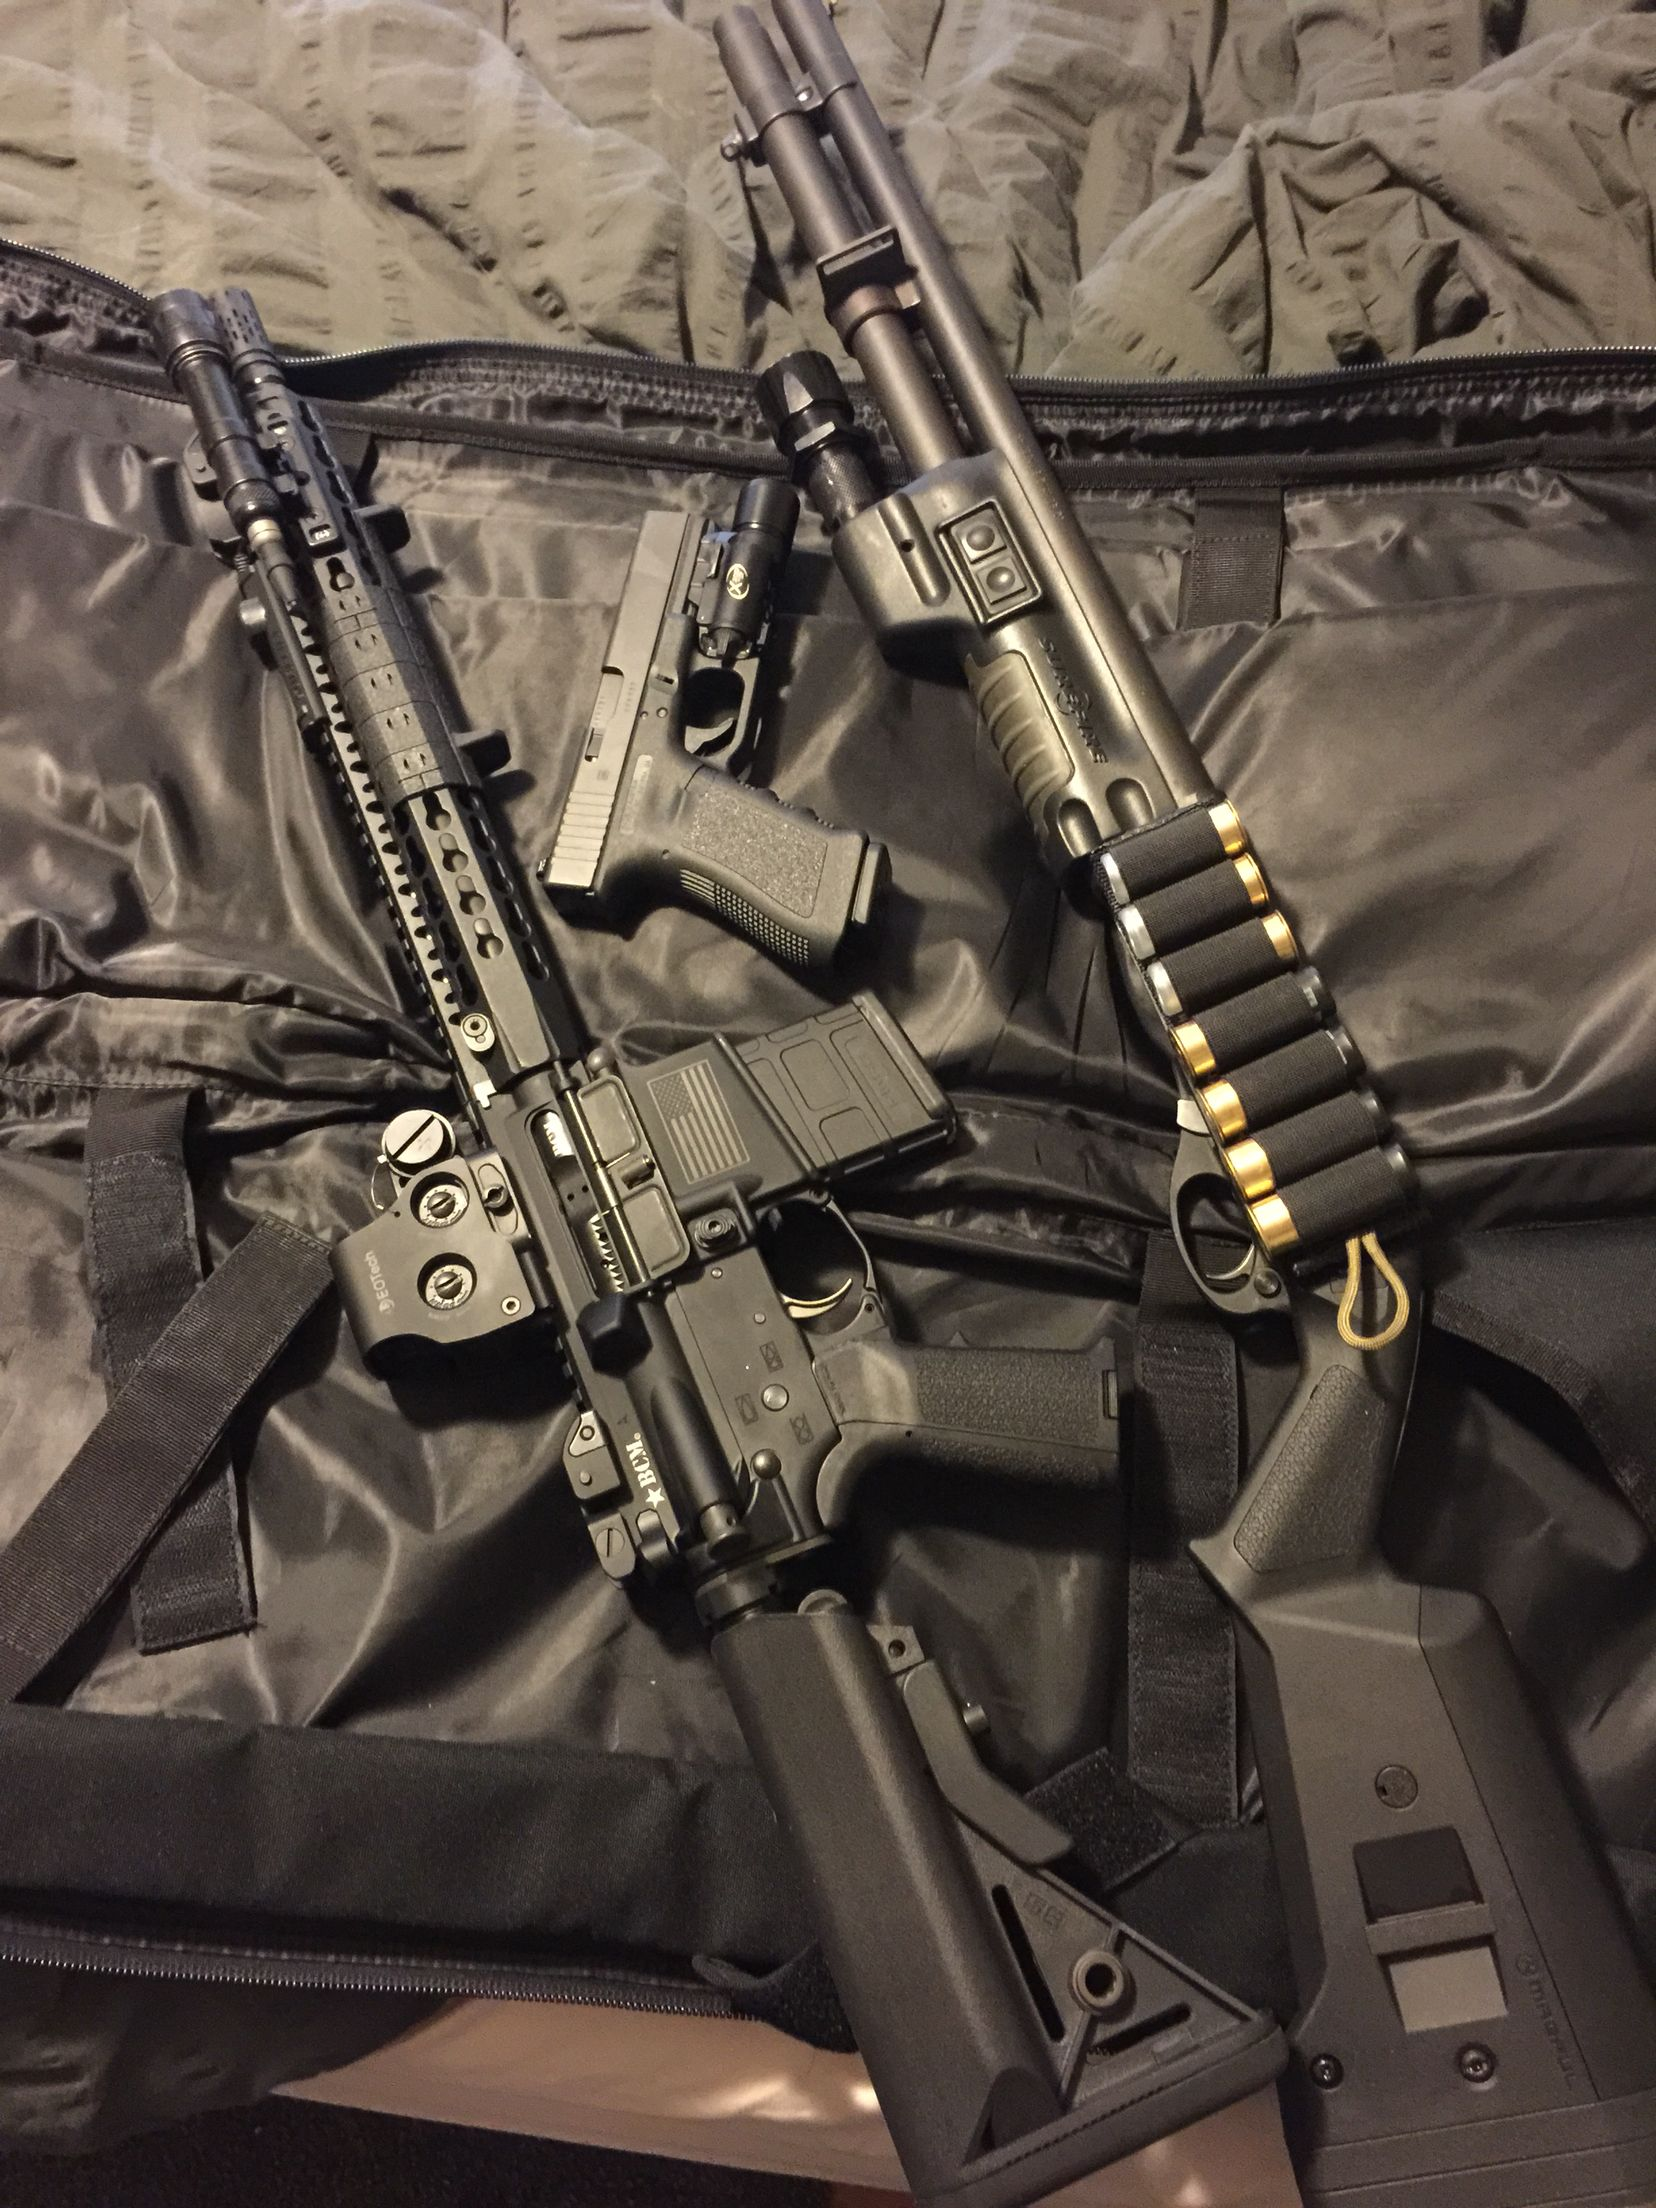 My Shtf Setup Guns N Gear Firearms Weapons Pin Parts List Remington 870 Tactical Upgraded Extractor Vang Comp On Shotgun And Ammo